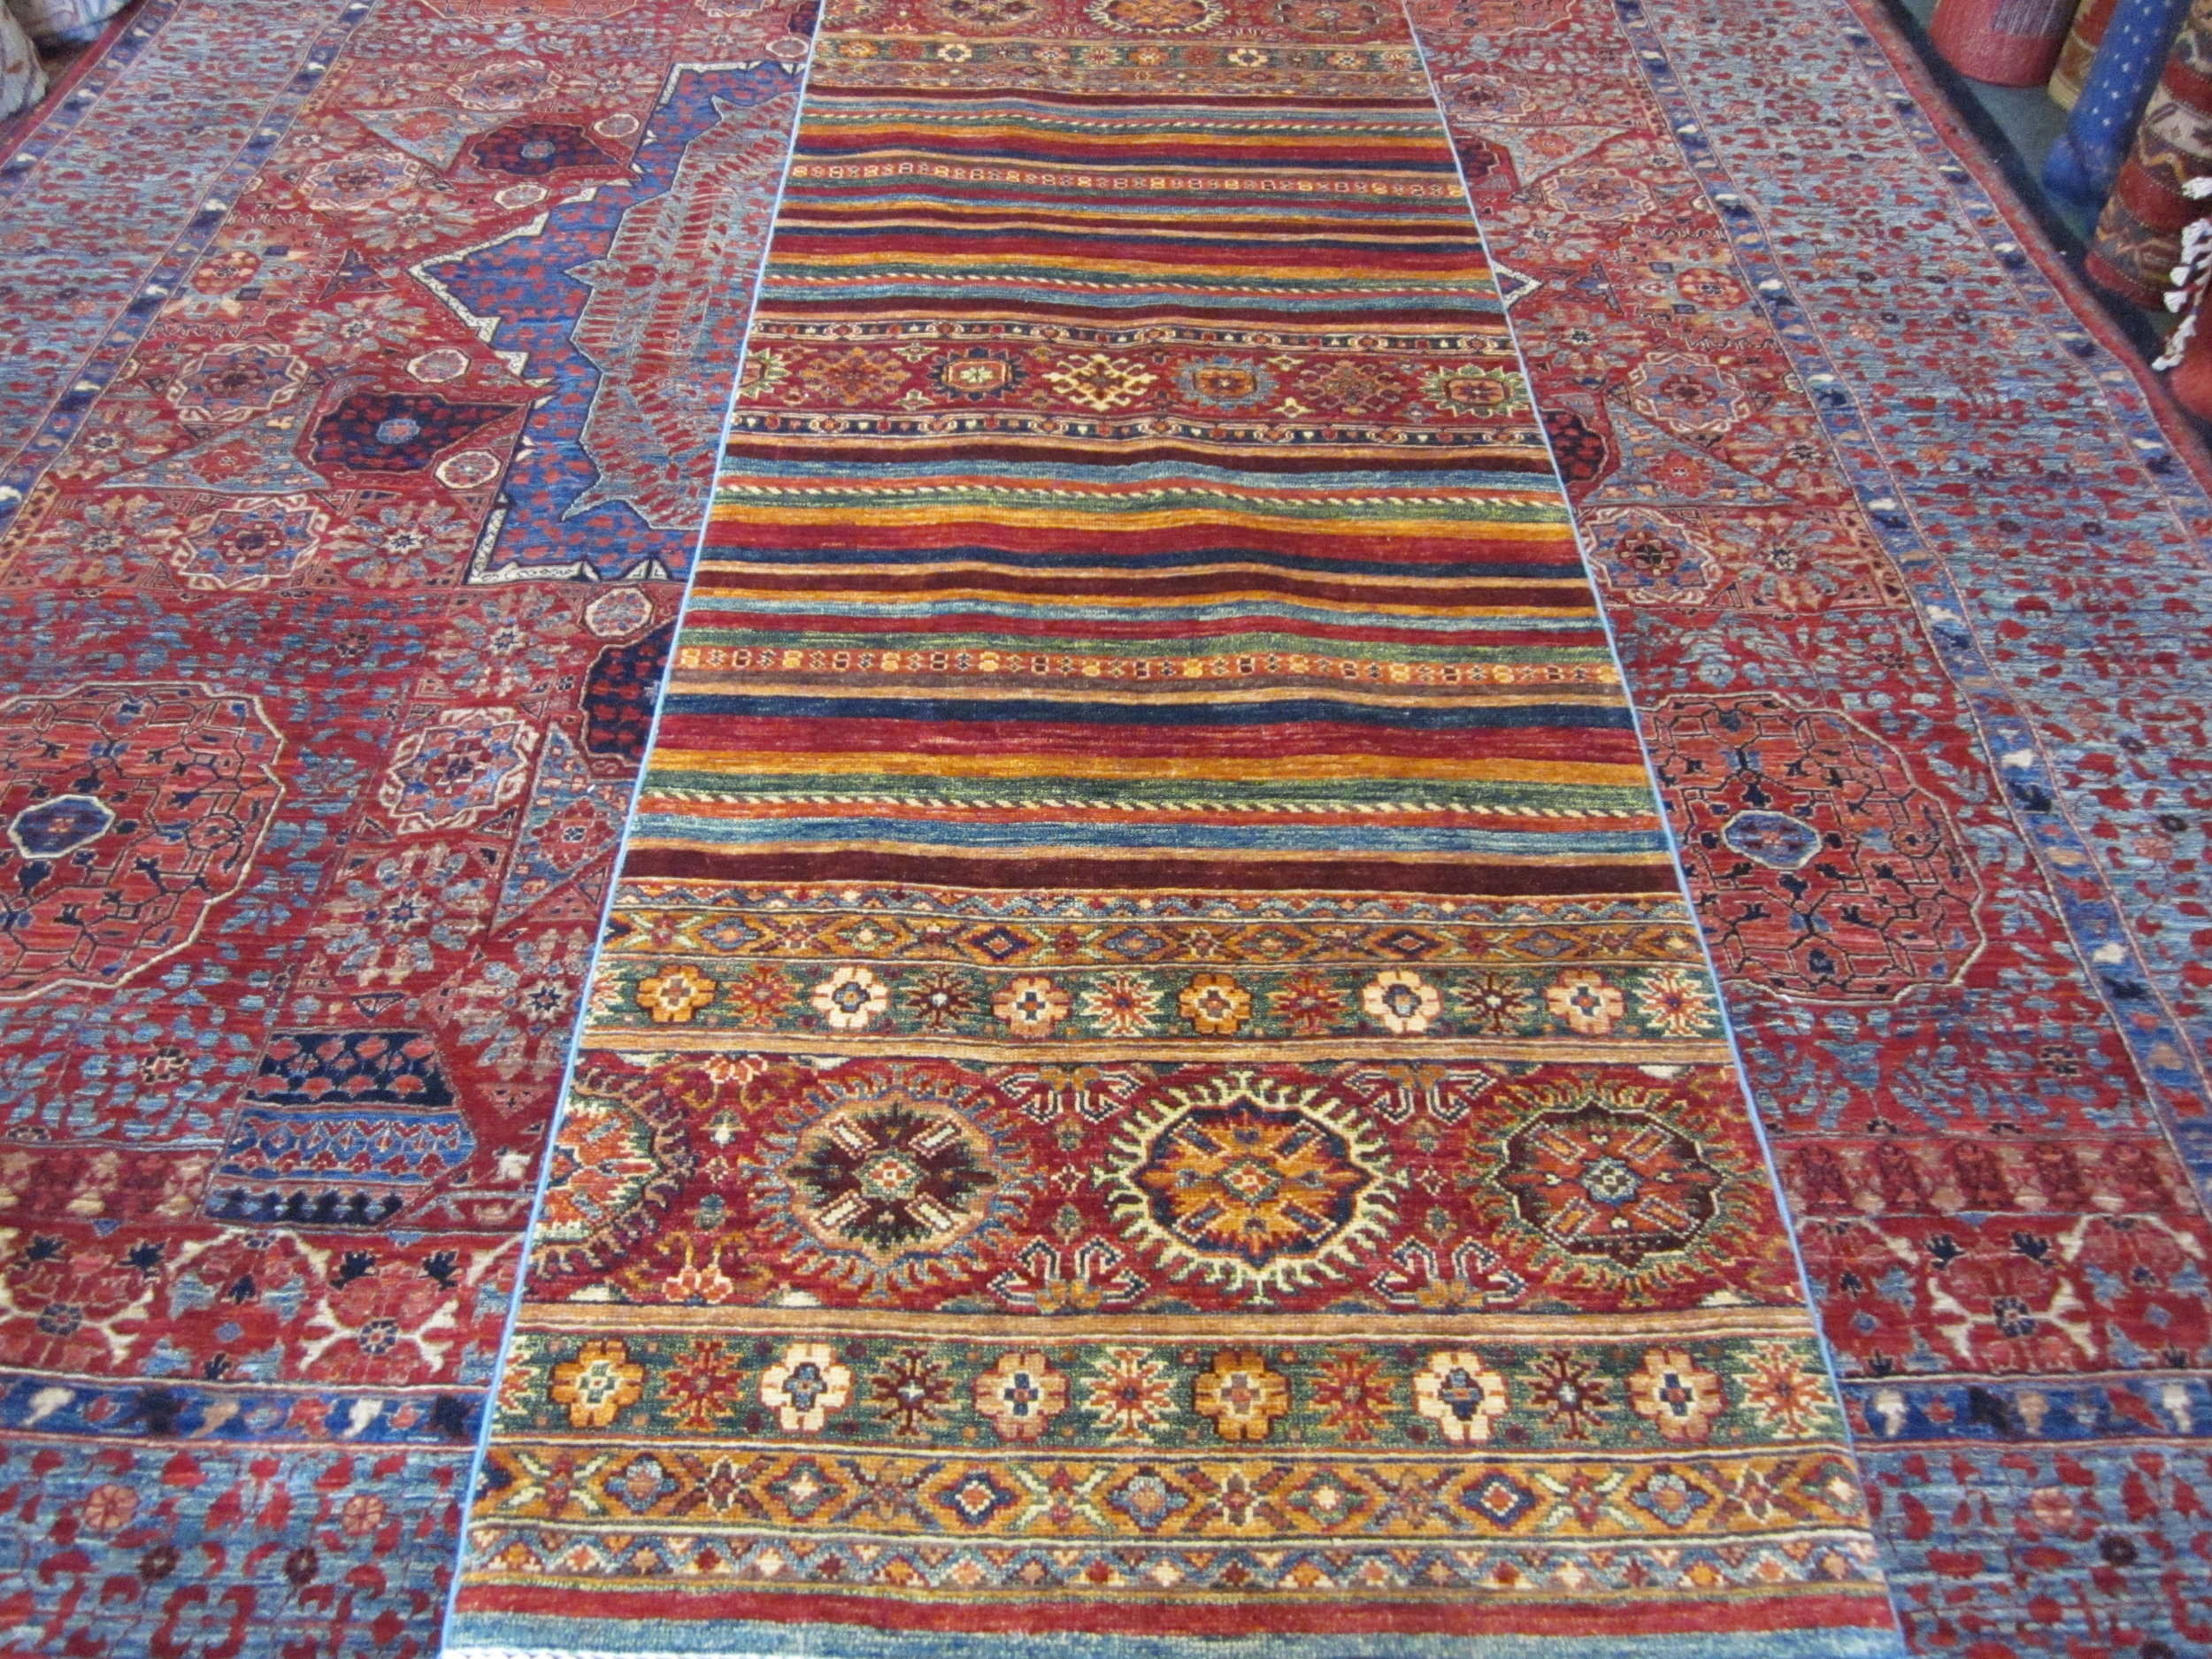 "#52) 2'7"" x 8'1"" Tribal runner, Khorjin design."